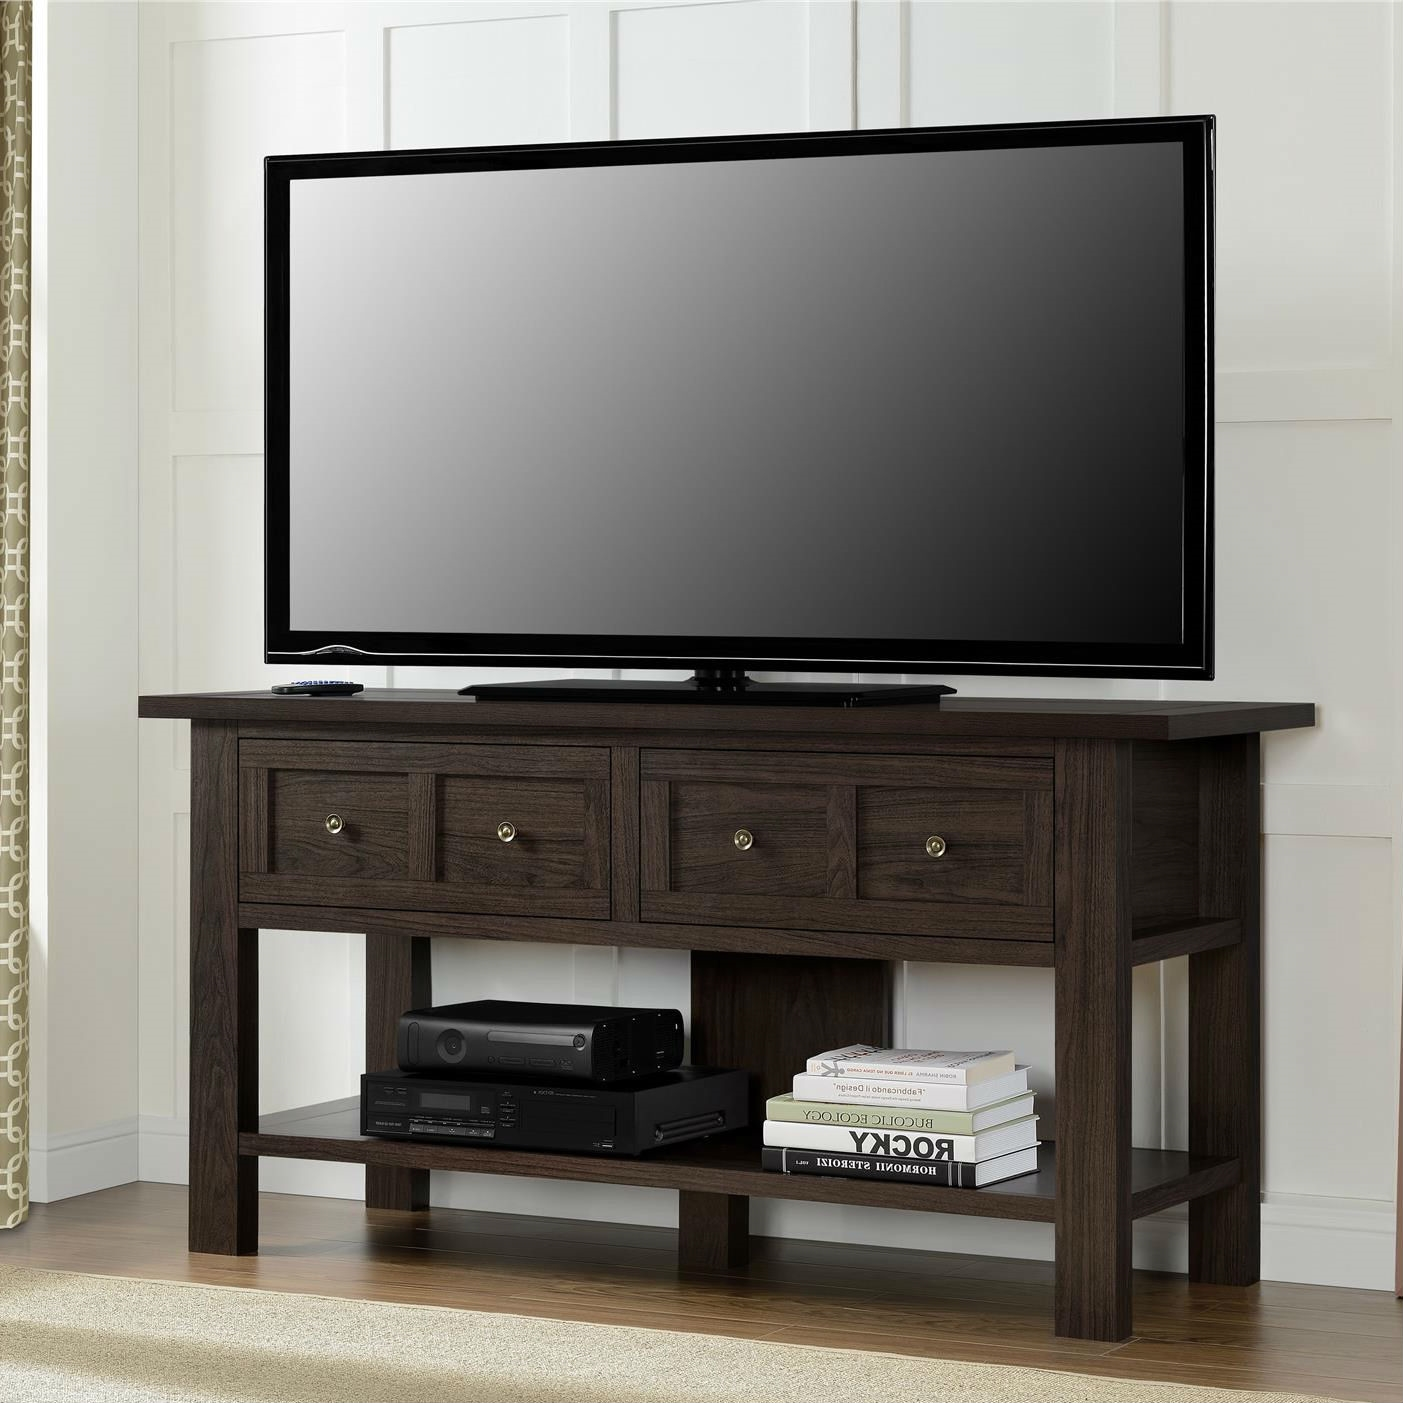 Tv Table Classic 55 Inch Tv Stand Versatile Accent Console Table